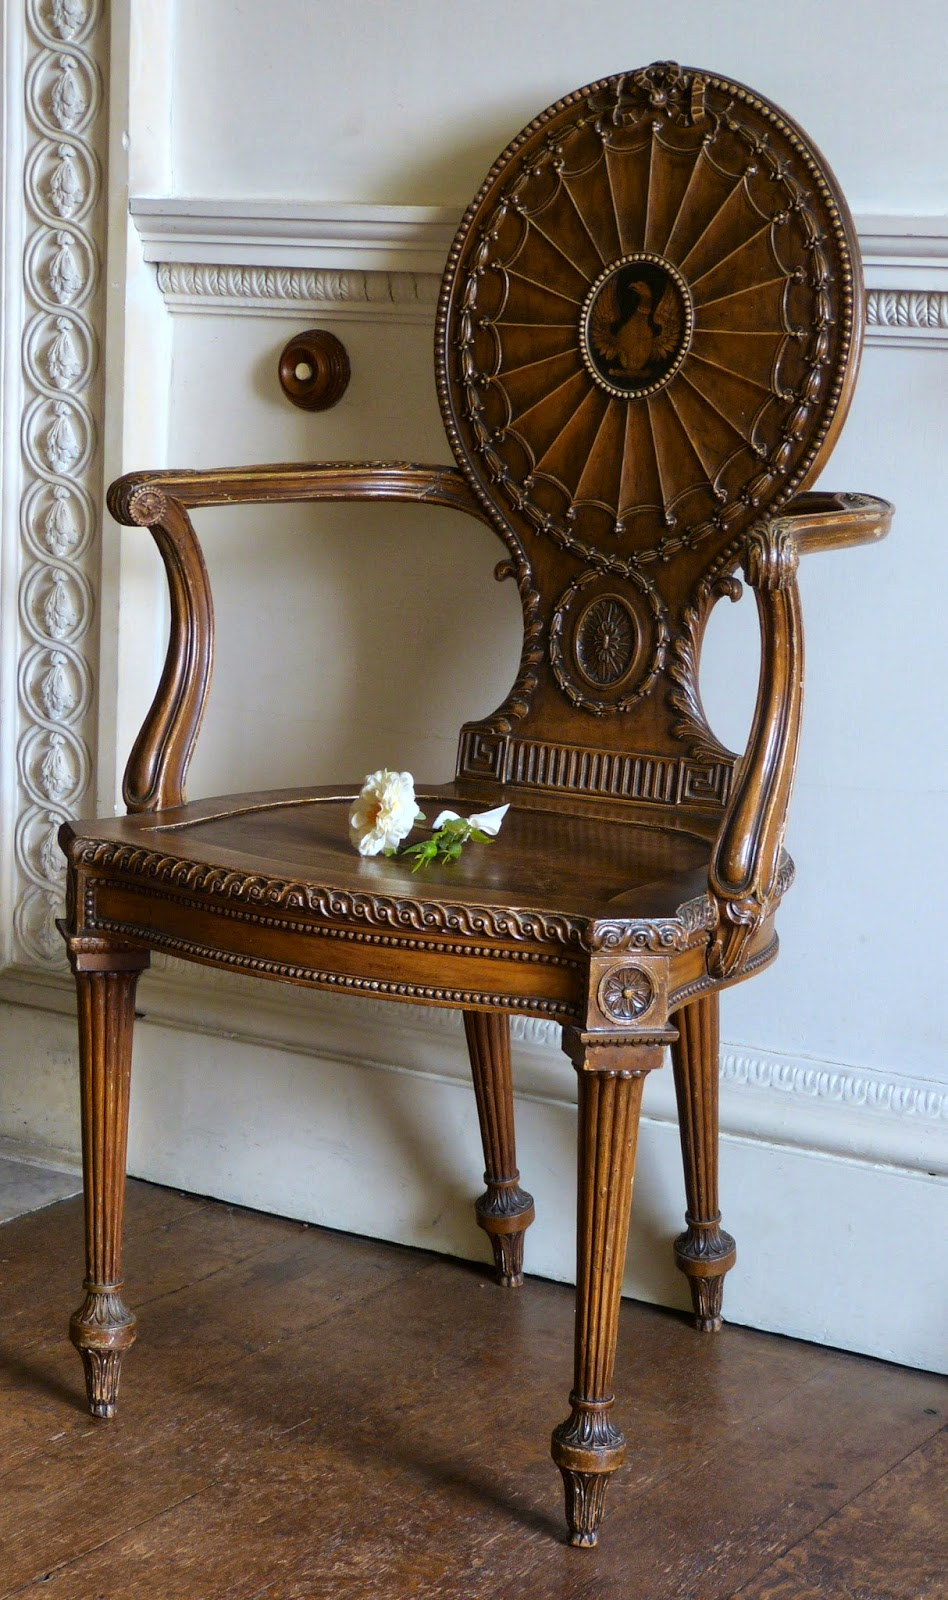 The Chippendale chairs in the Top Hall